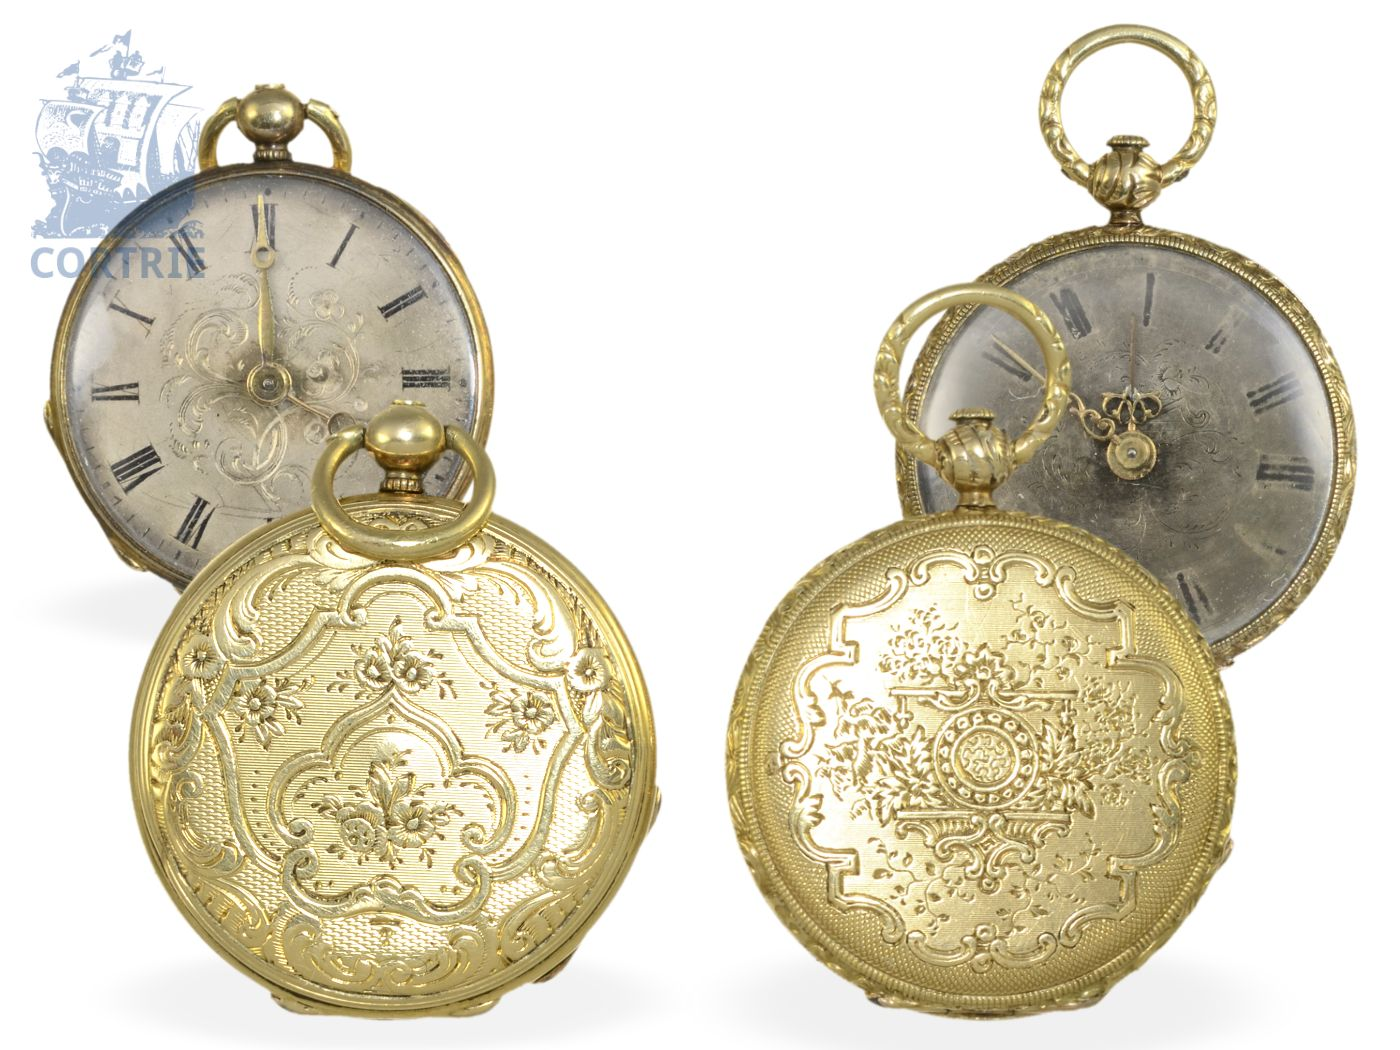 Pocket watch/pendant watch: pair of rare Lepines, miniature sizes, Robert Brandt & Muller, Switzerland ca. 1830/1840, formerly nobleman's possession-